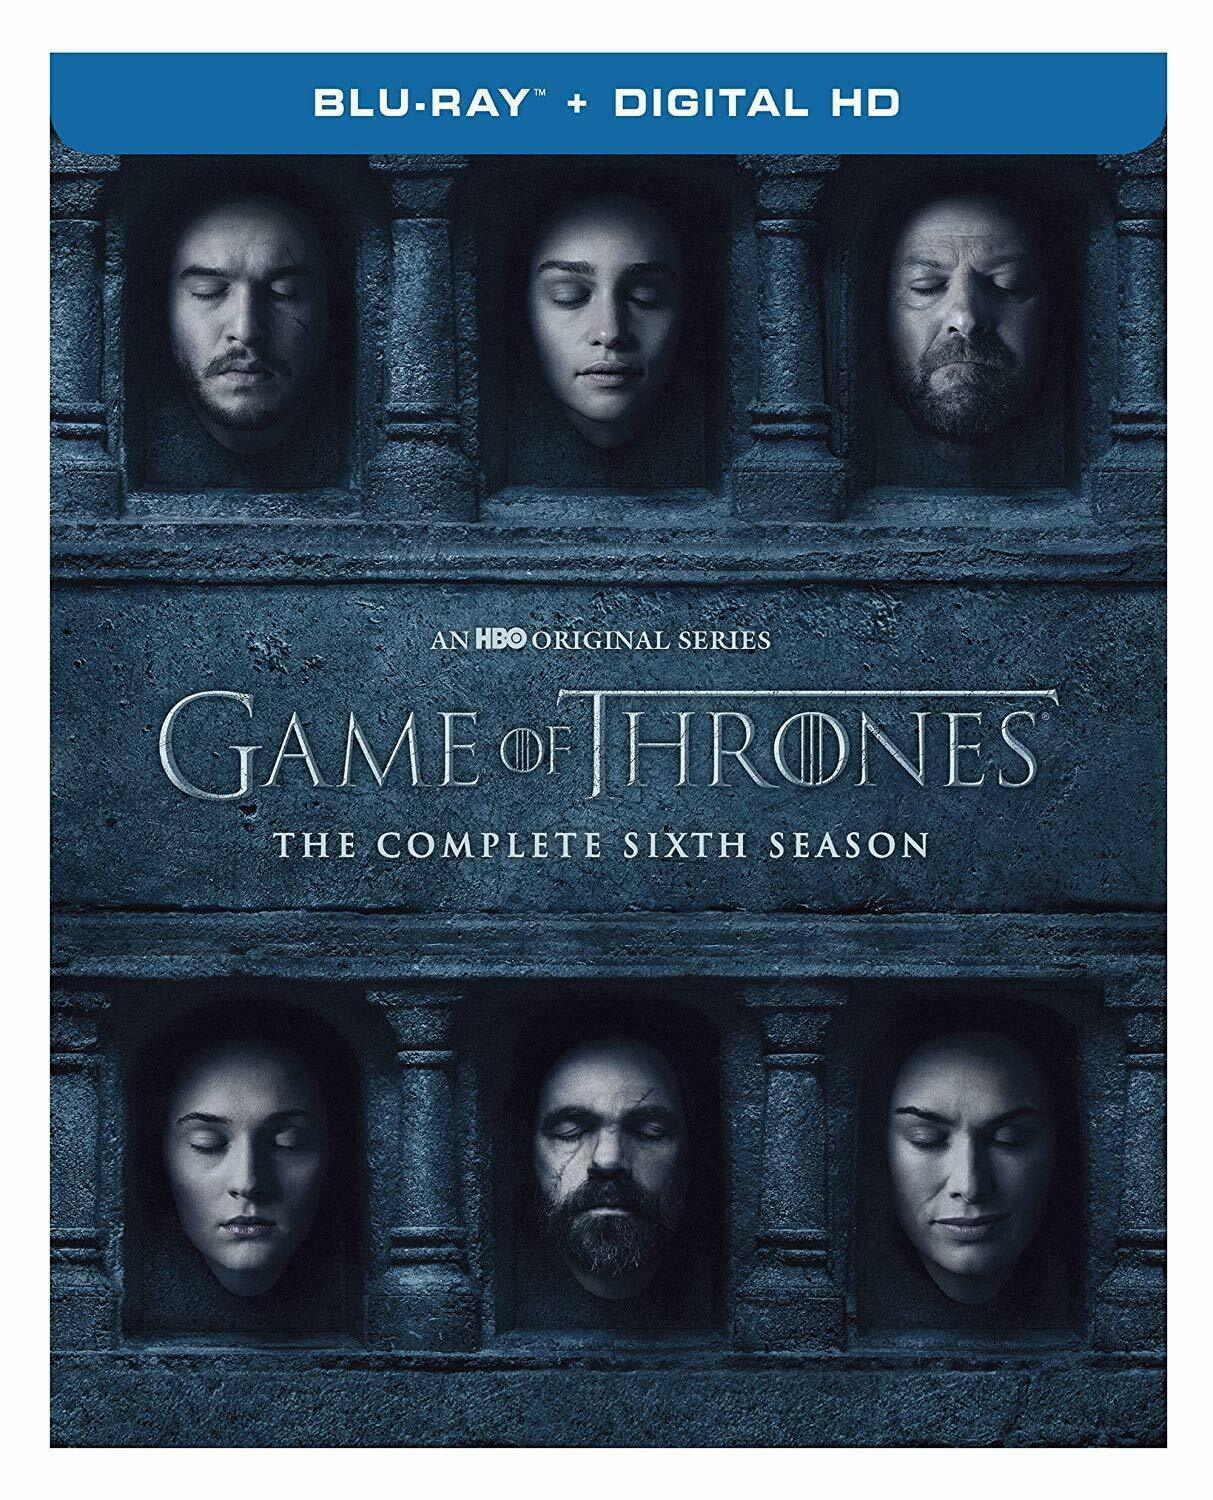 Game Of Thrones: Complete 6th Season (Blu-ray/Digital, Canadian/Plays US) NEW